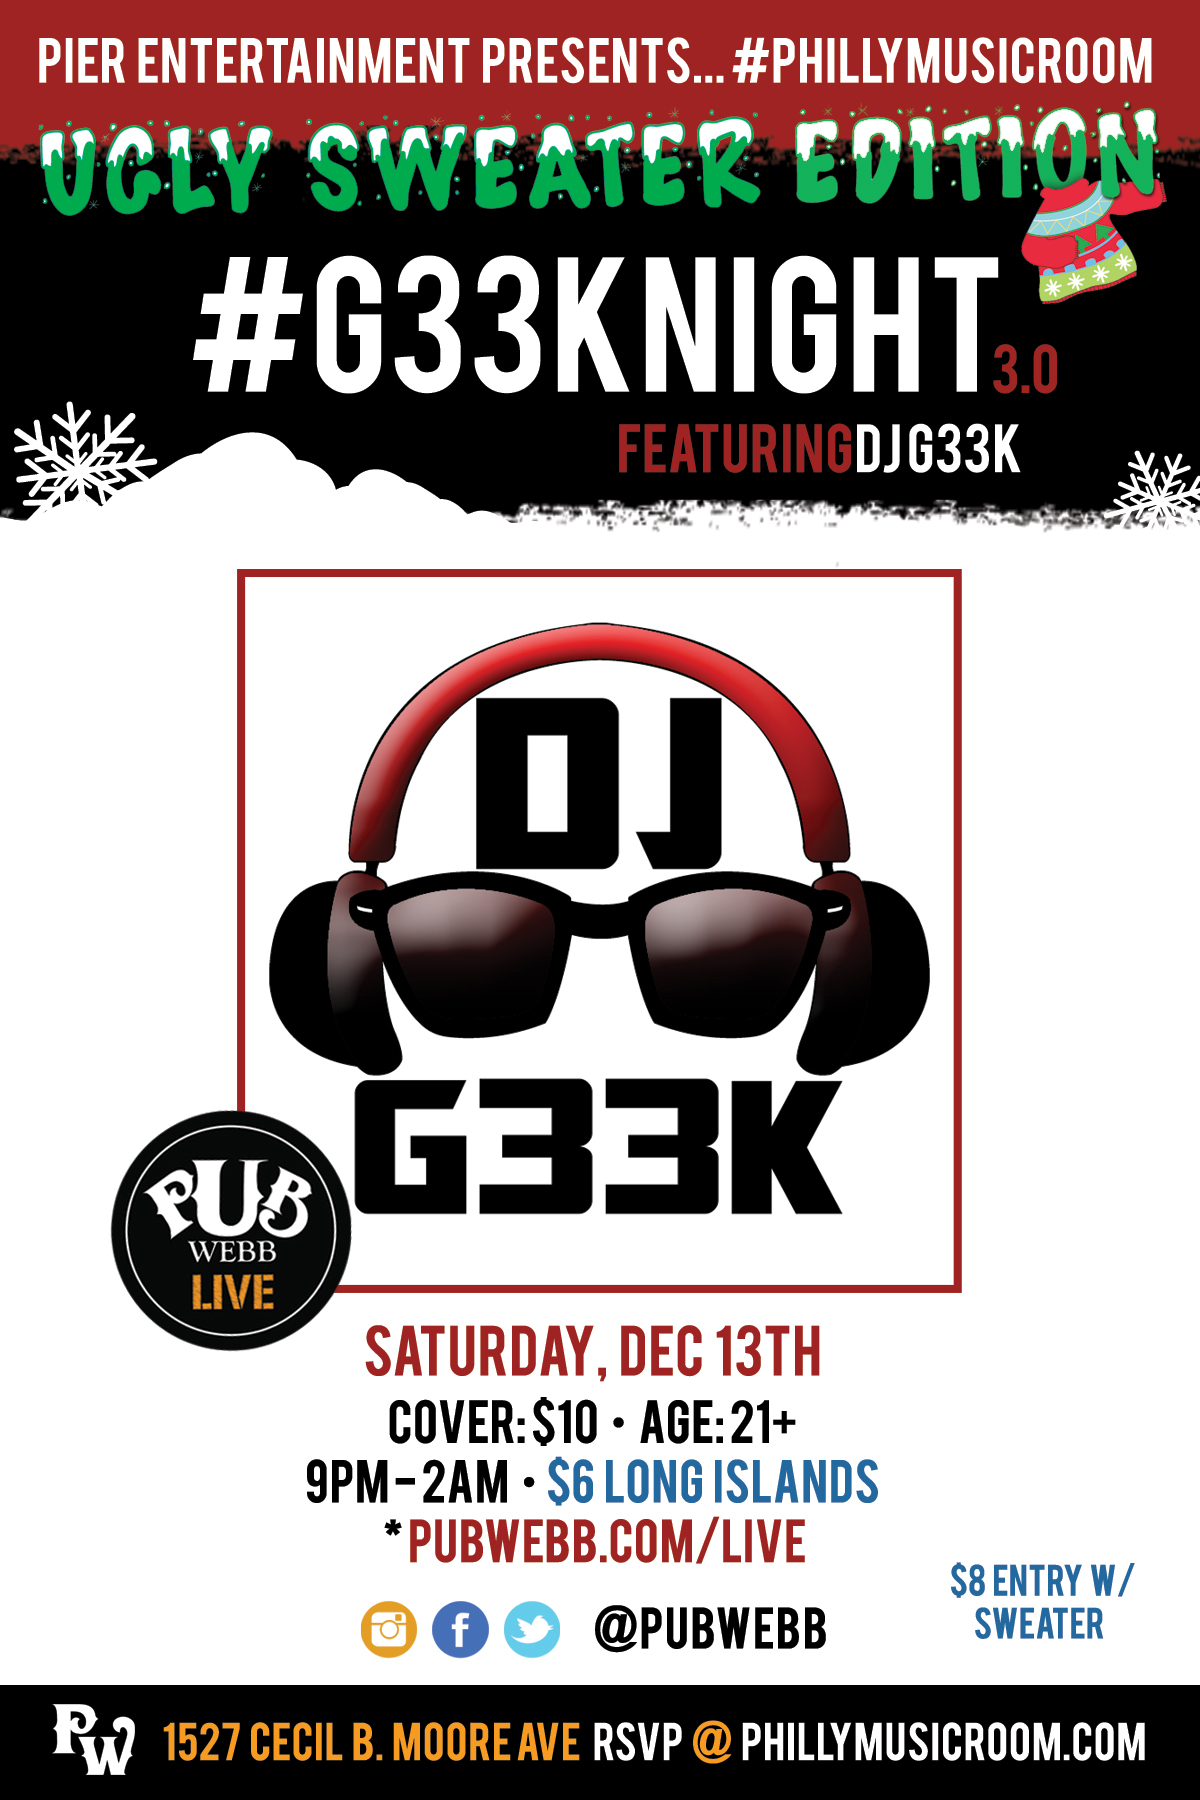 #PhillyMusicRoom Presents... #G33kNight 3.0 Ugly Sweater Edition at Pub Webb Live